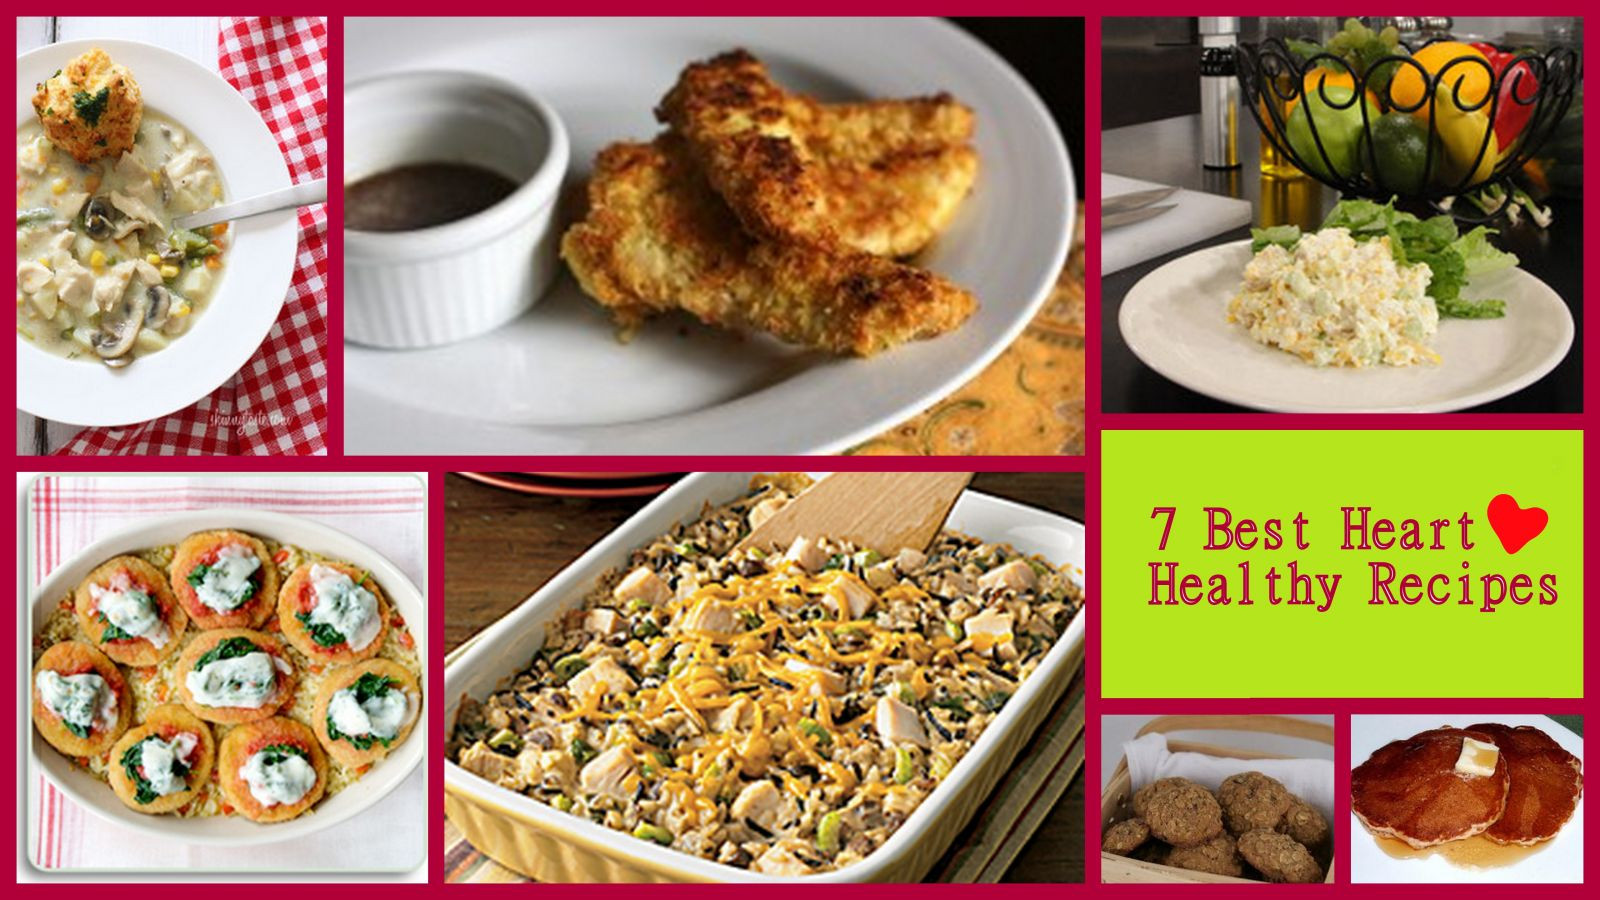 Best Heart Healthy Recipes the top 20 Ideas About 7 Best Heart Healthy Recipes